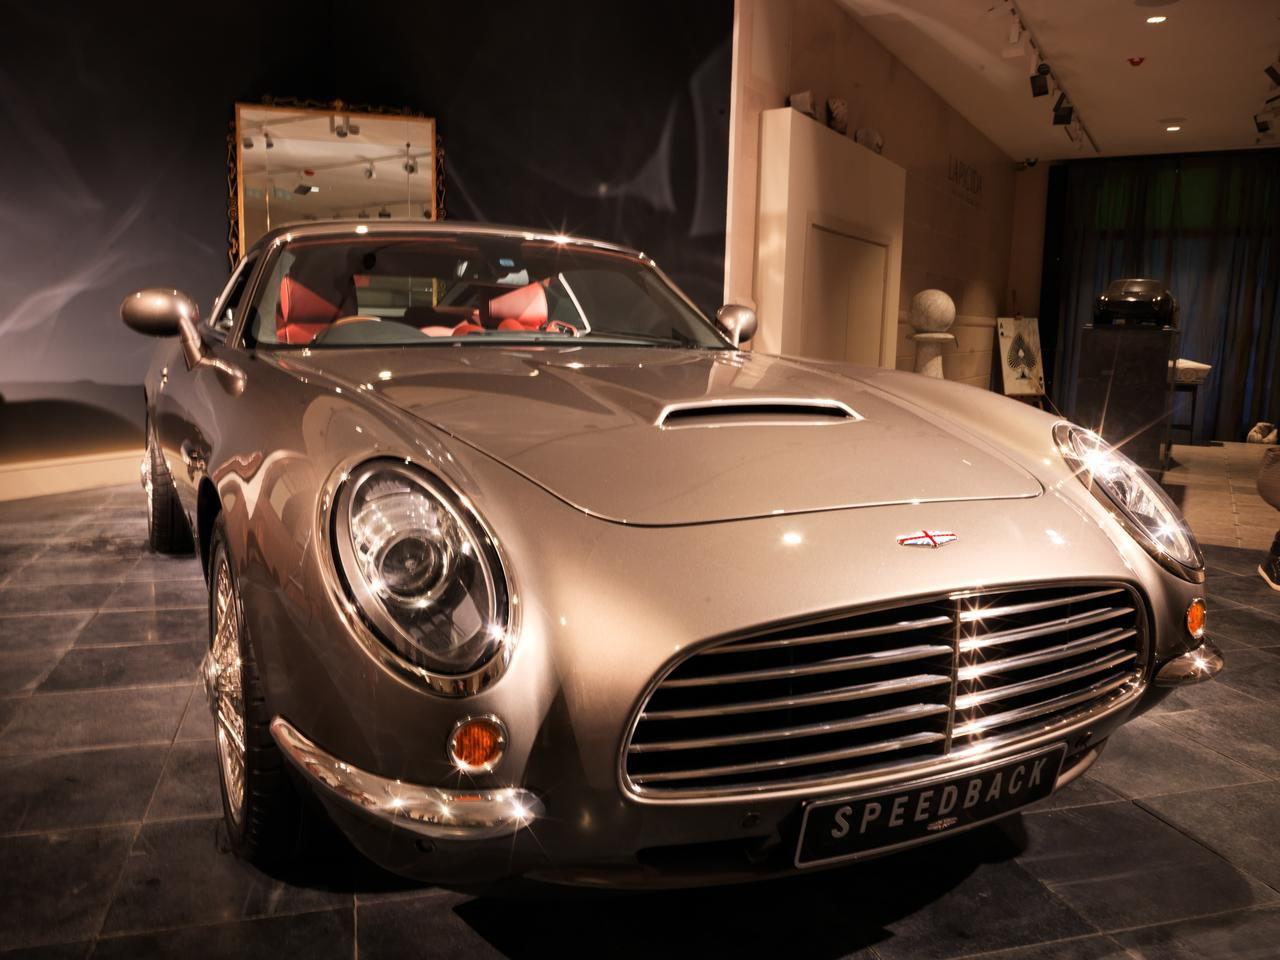 From the nose the Speedback looks like it could have been related to a Maserati, Porsche or Mini Cooper in a past life